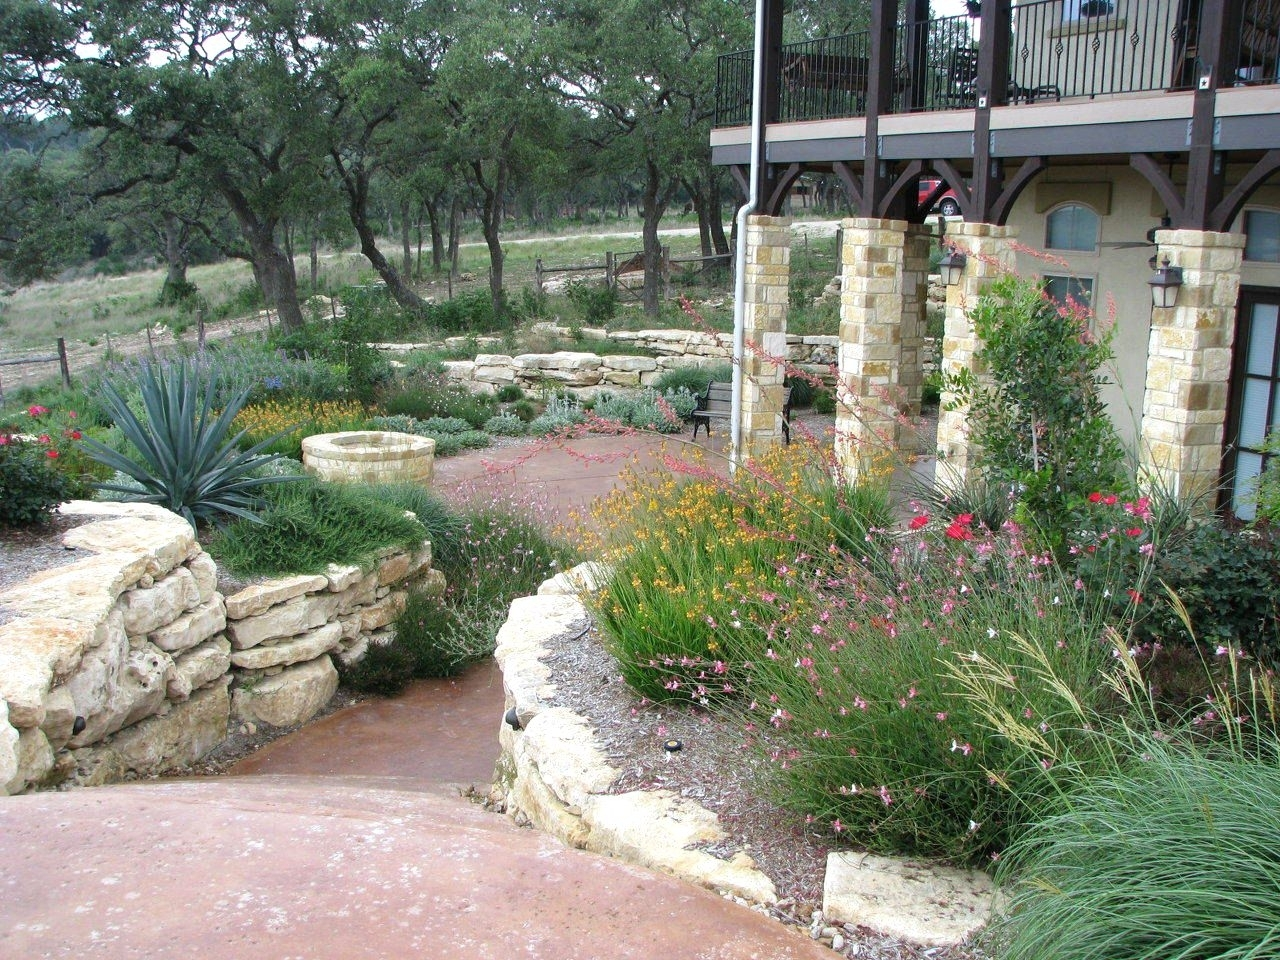 Image of: Small Yard Landscaping Ideas Central Texas Drought Tolerant Texas For Drought Tolerant Landscape Ideas Popular Drought Tolerant Landscape Ideas